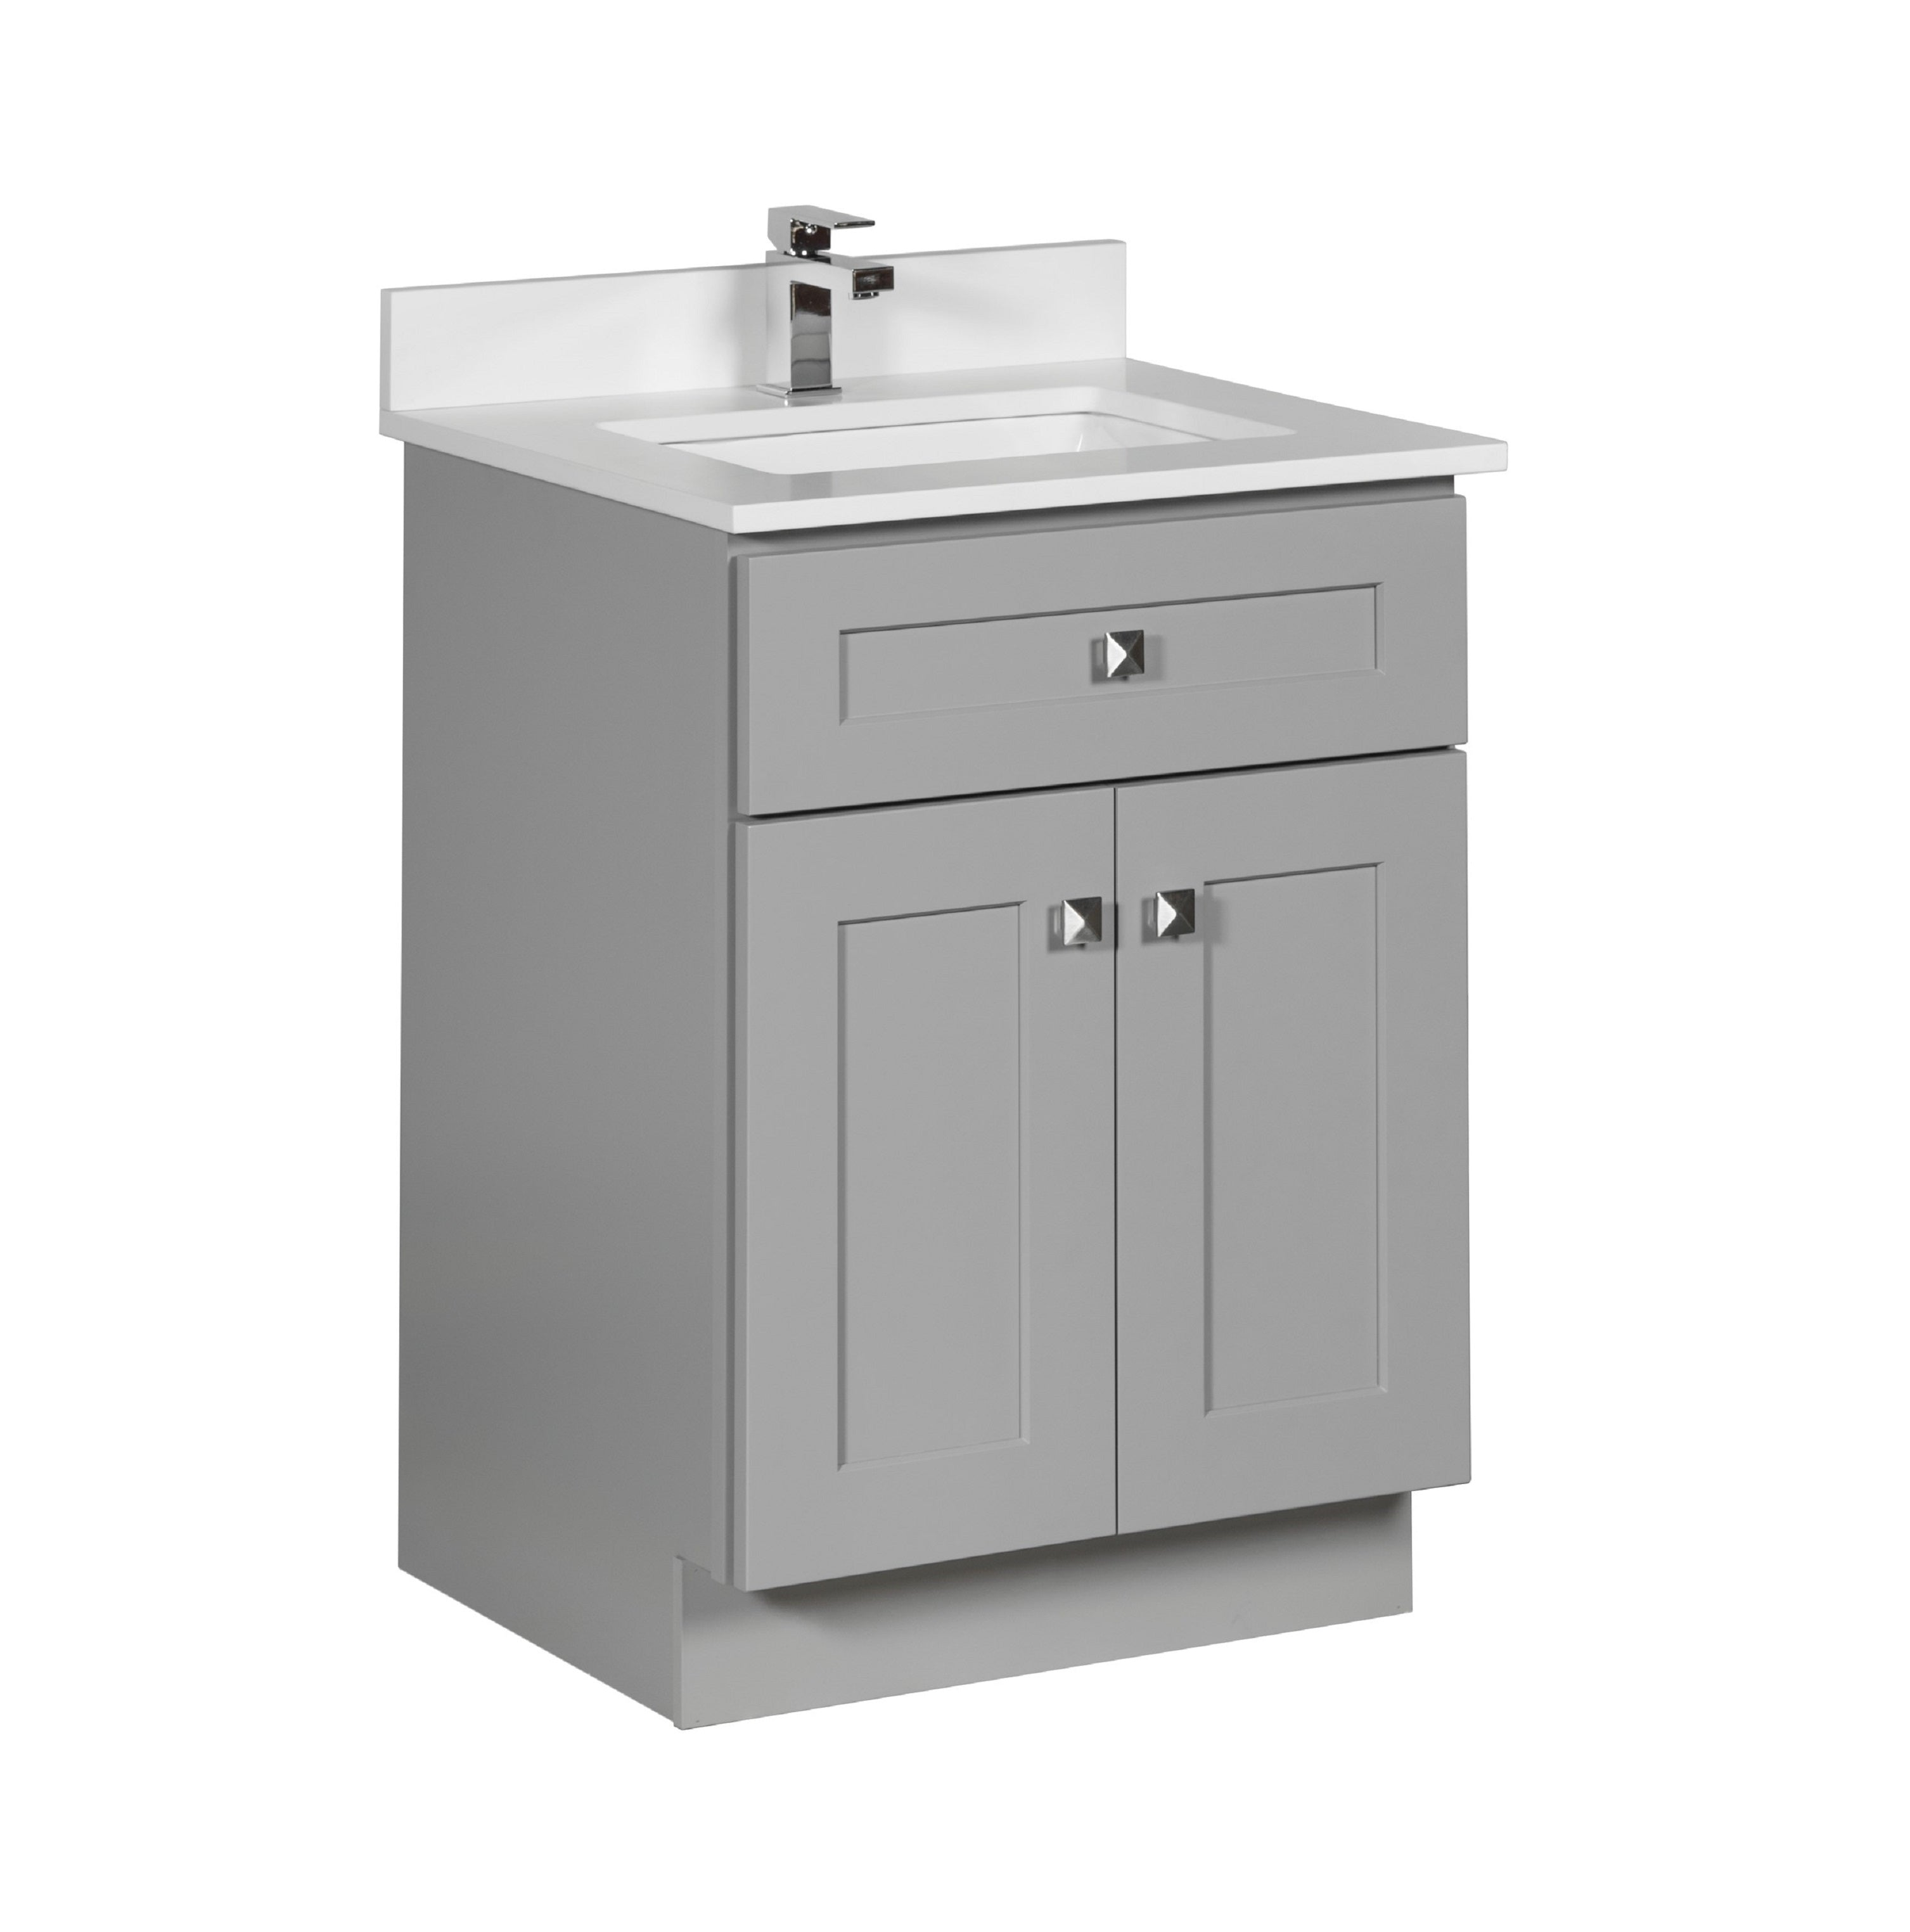 ikea cabinets bamboo pedestal sink faucet bathroom cabinet inch contemporary with drawers bath under vanity at storage